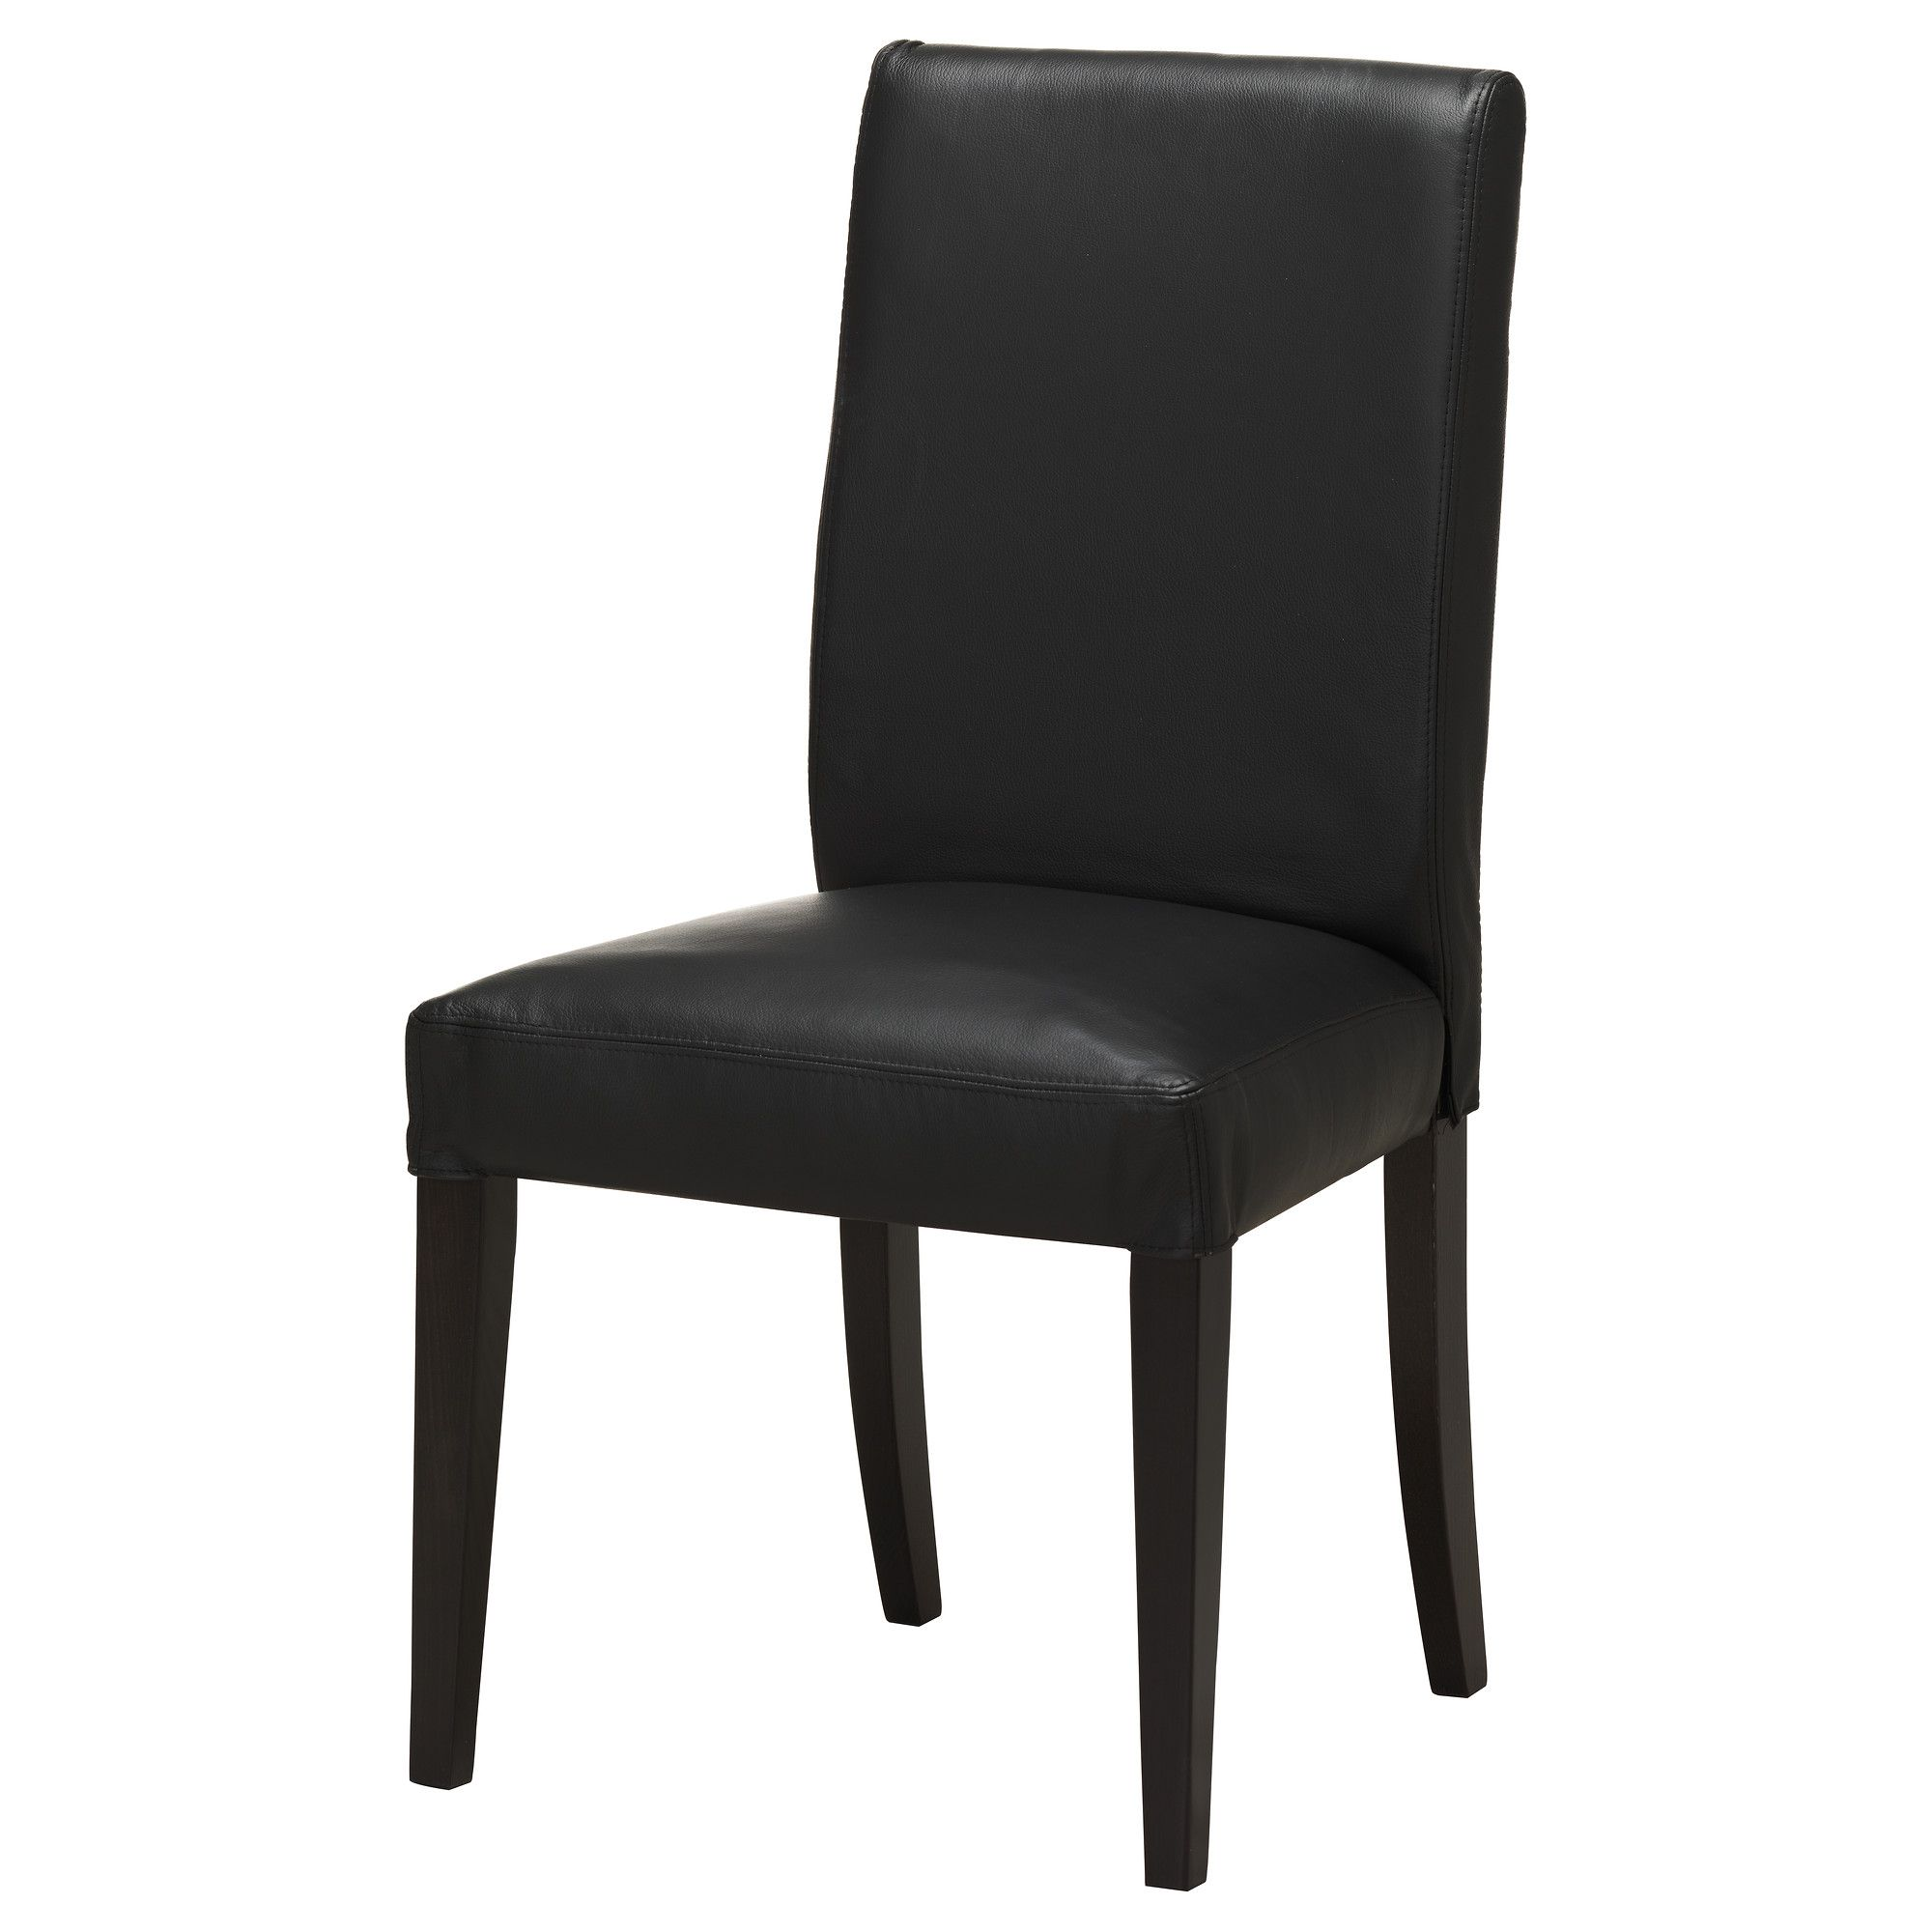 Henriksdal Chair Brown Black Robust Black Ikea